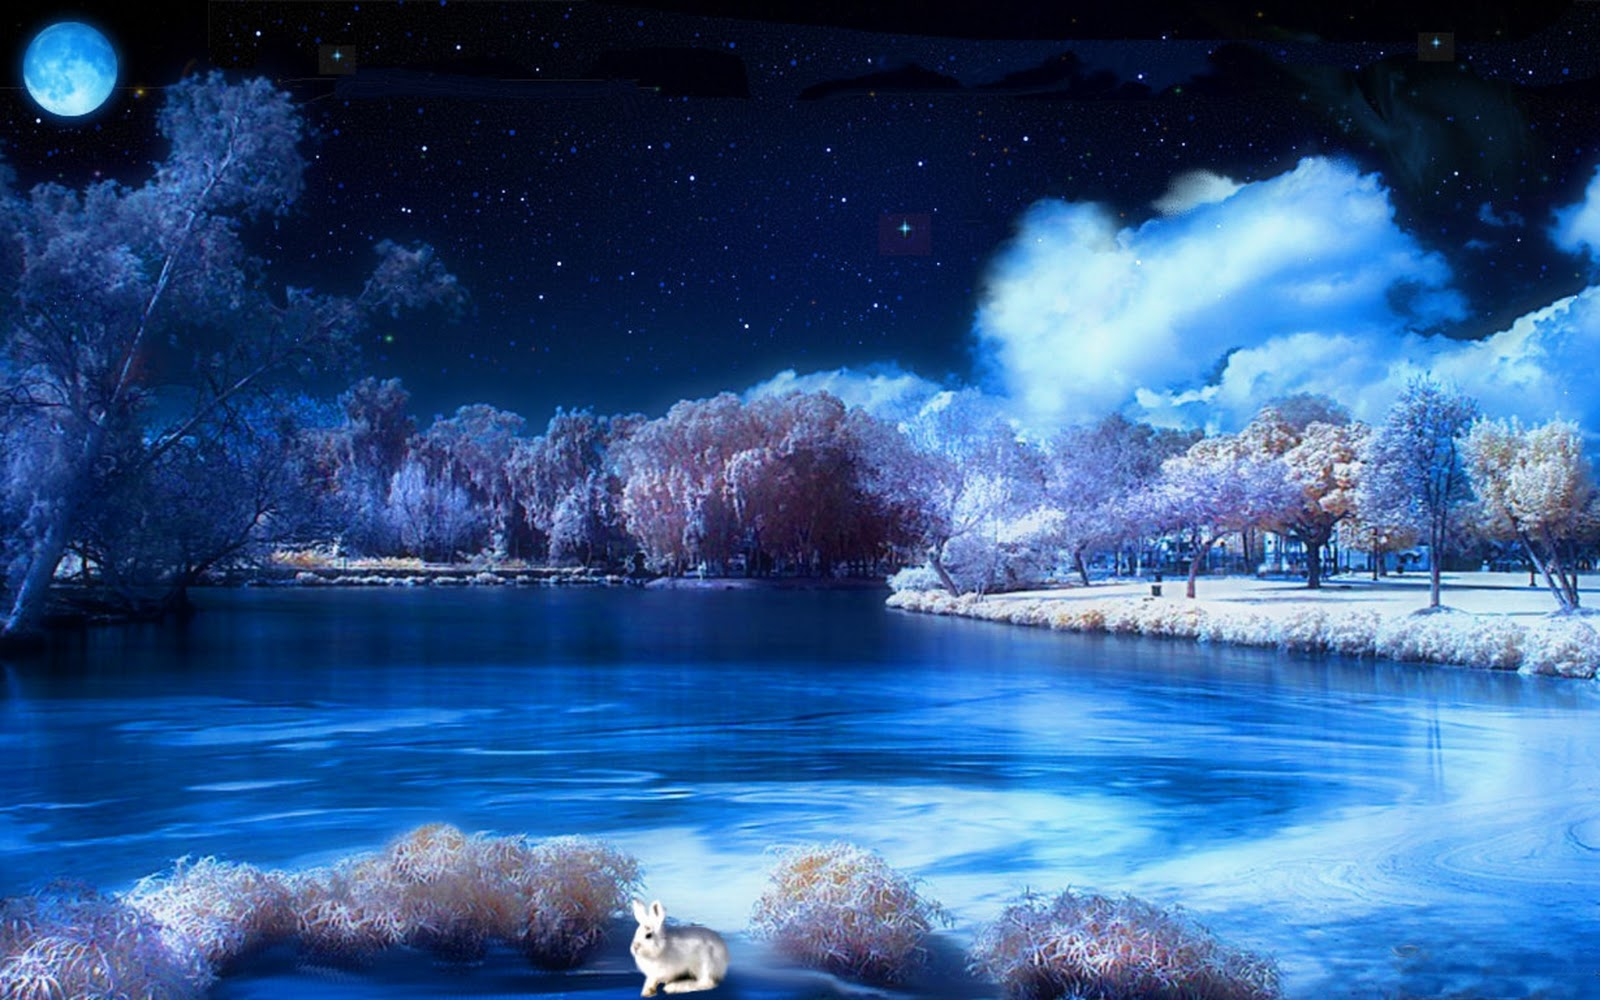 3d winter scenes wallpaper - photo #27